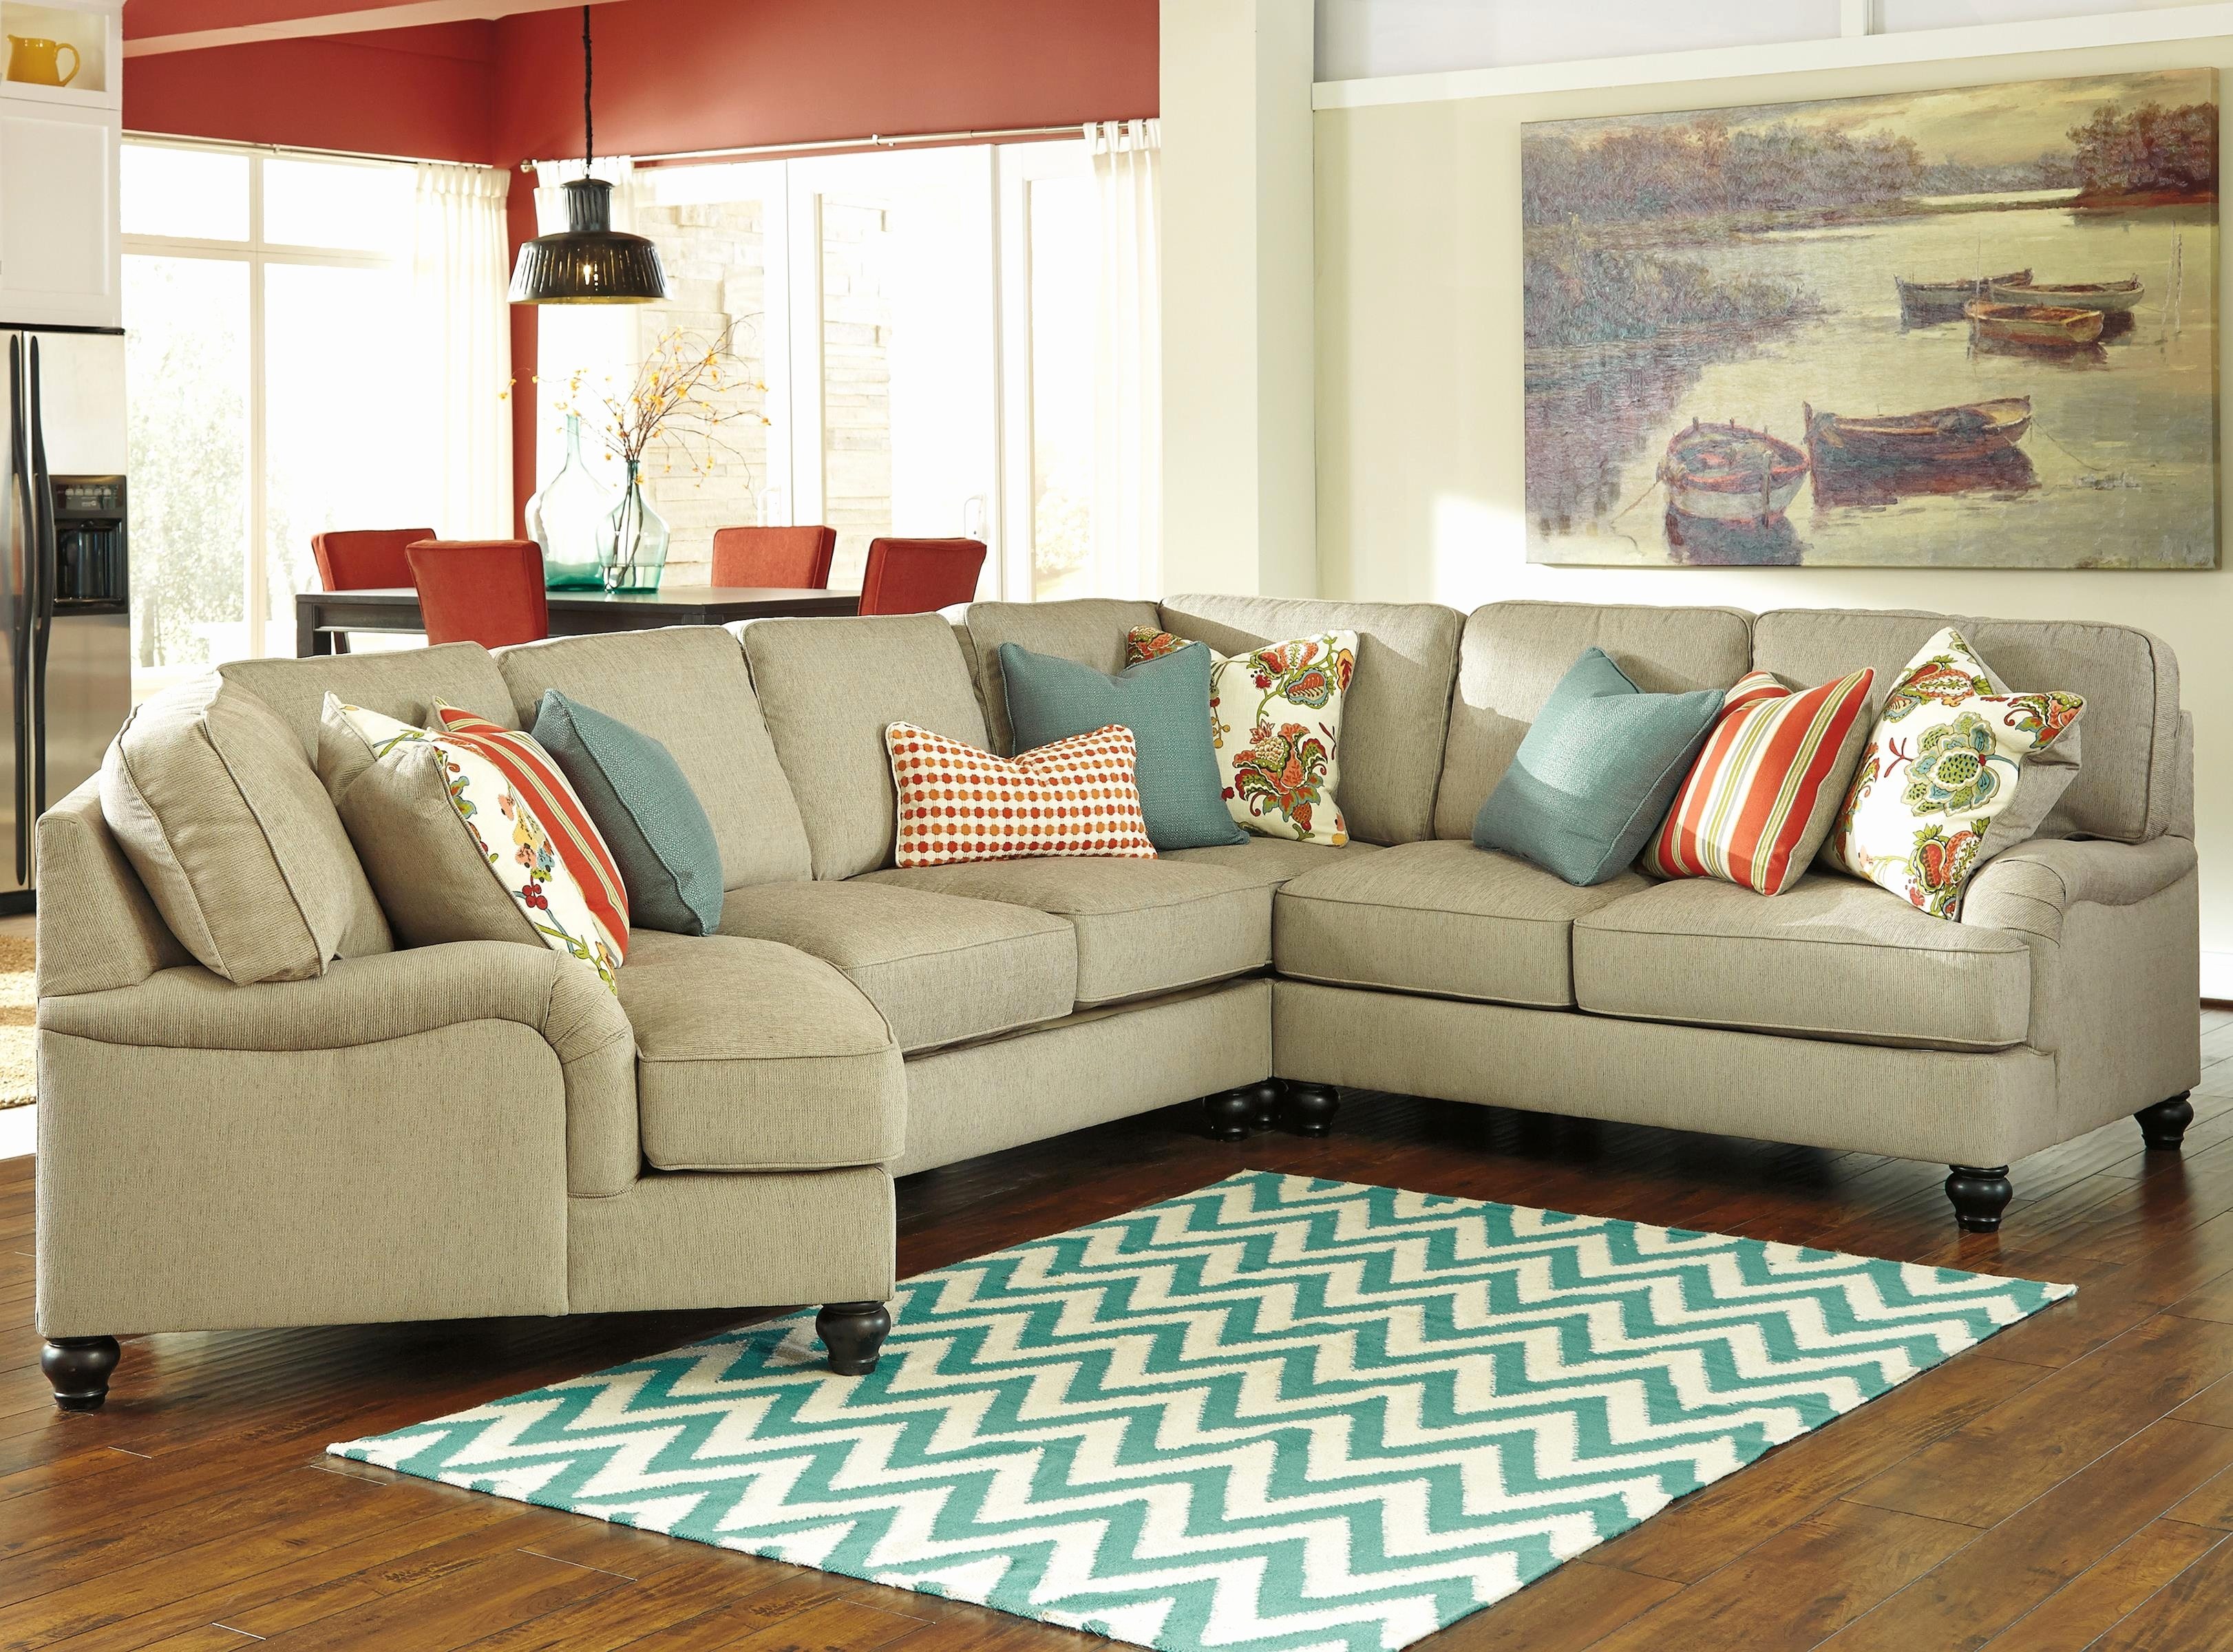 Nebraska Furniture Mart Kansas Lovely Nebraska Furniture Mart within Nebraska Furniture Mart Sectional Sofas